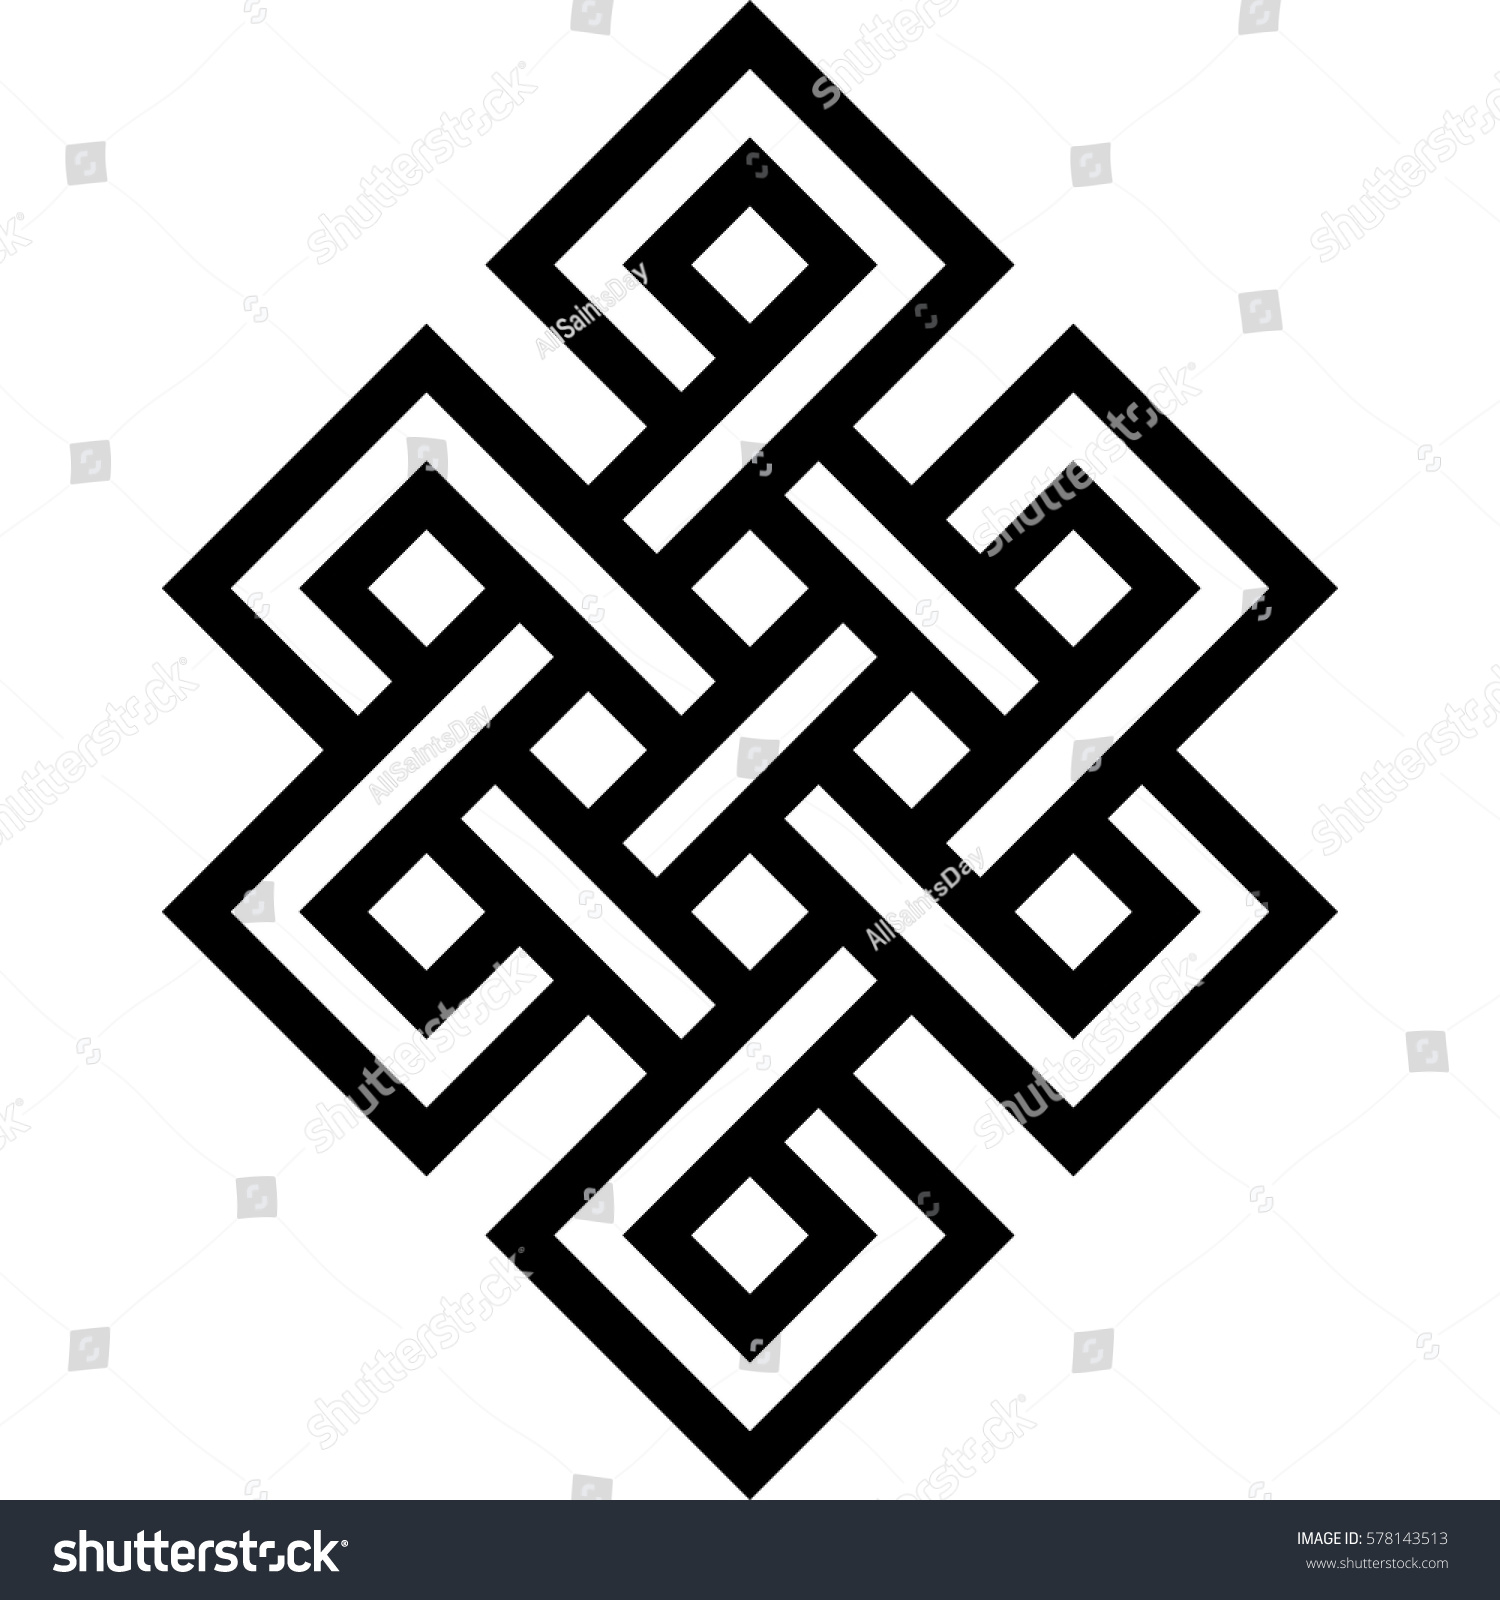 stock-vector-celtic-pattern-element-of-s